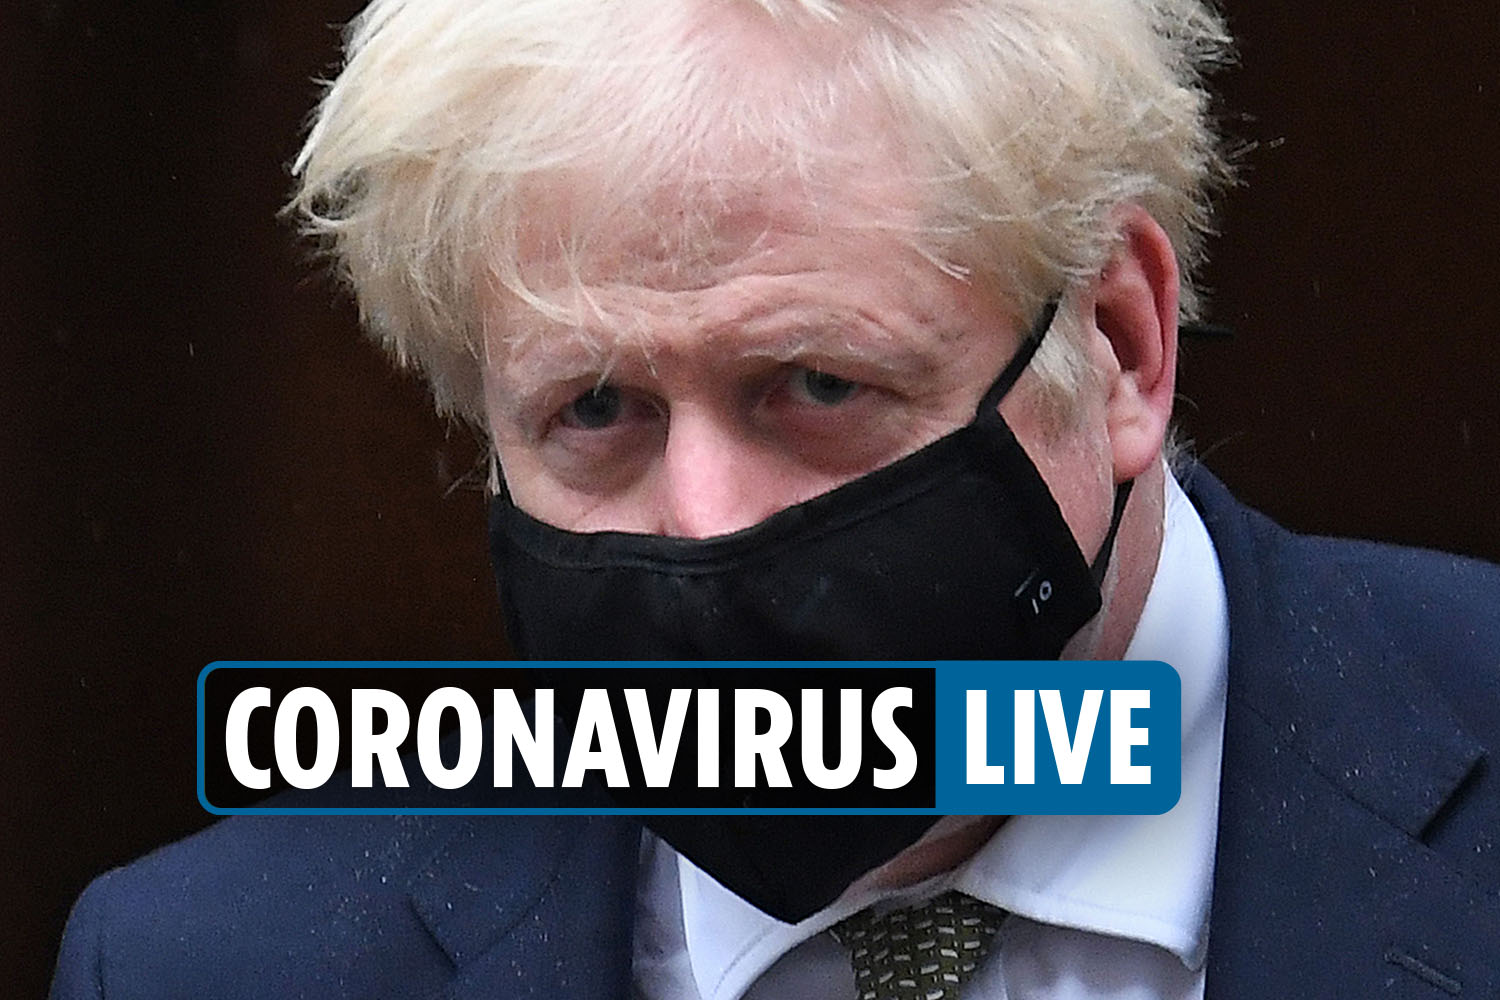 Coronavirus UK news – SAGE expert warns of 'tough Xmas' but says vaccine in spring will be 'light at end of tunnel'